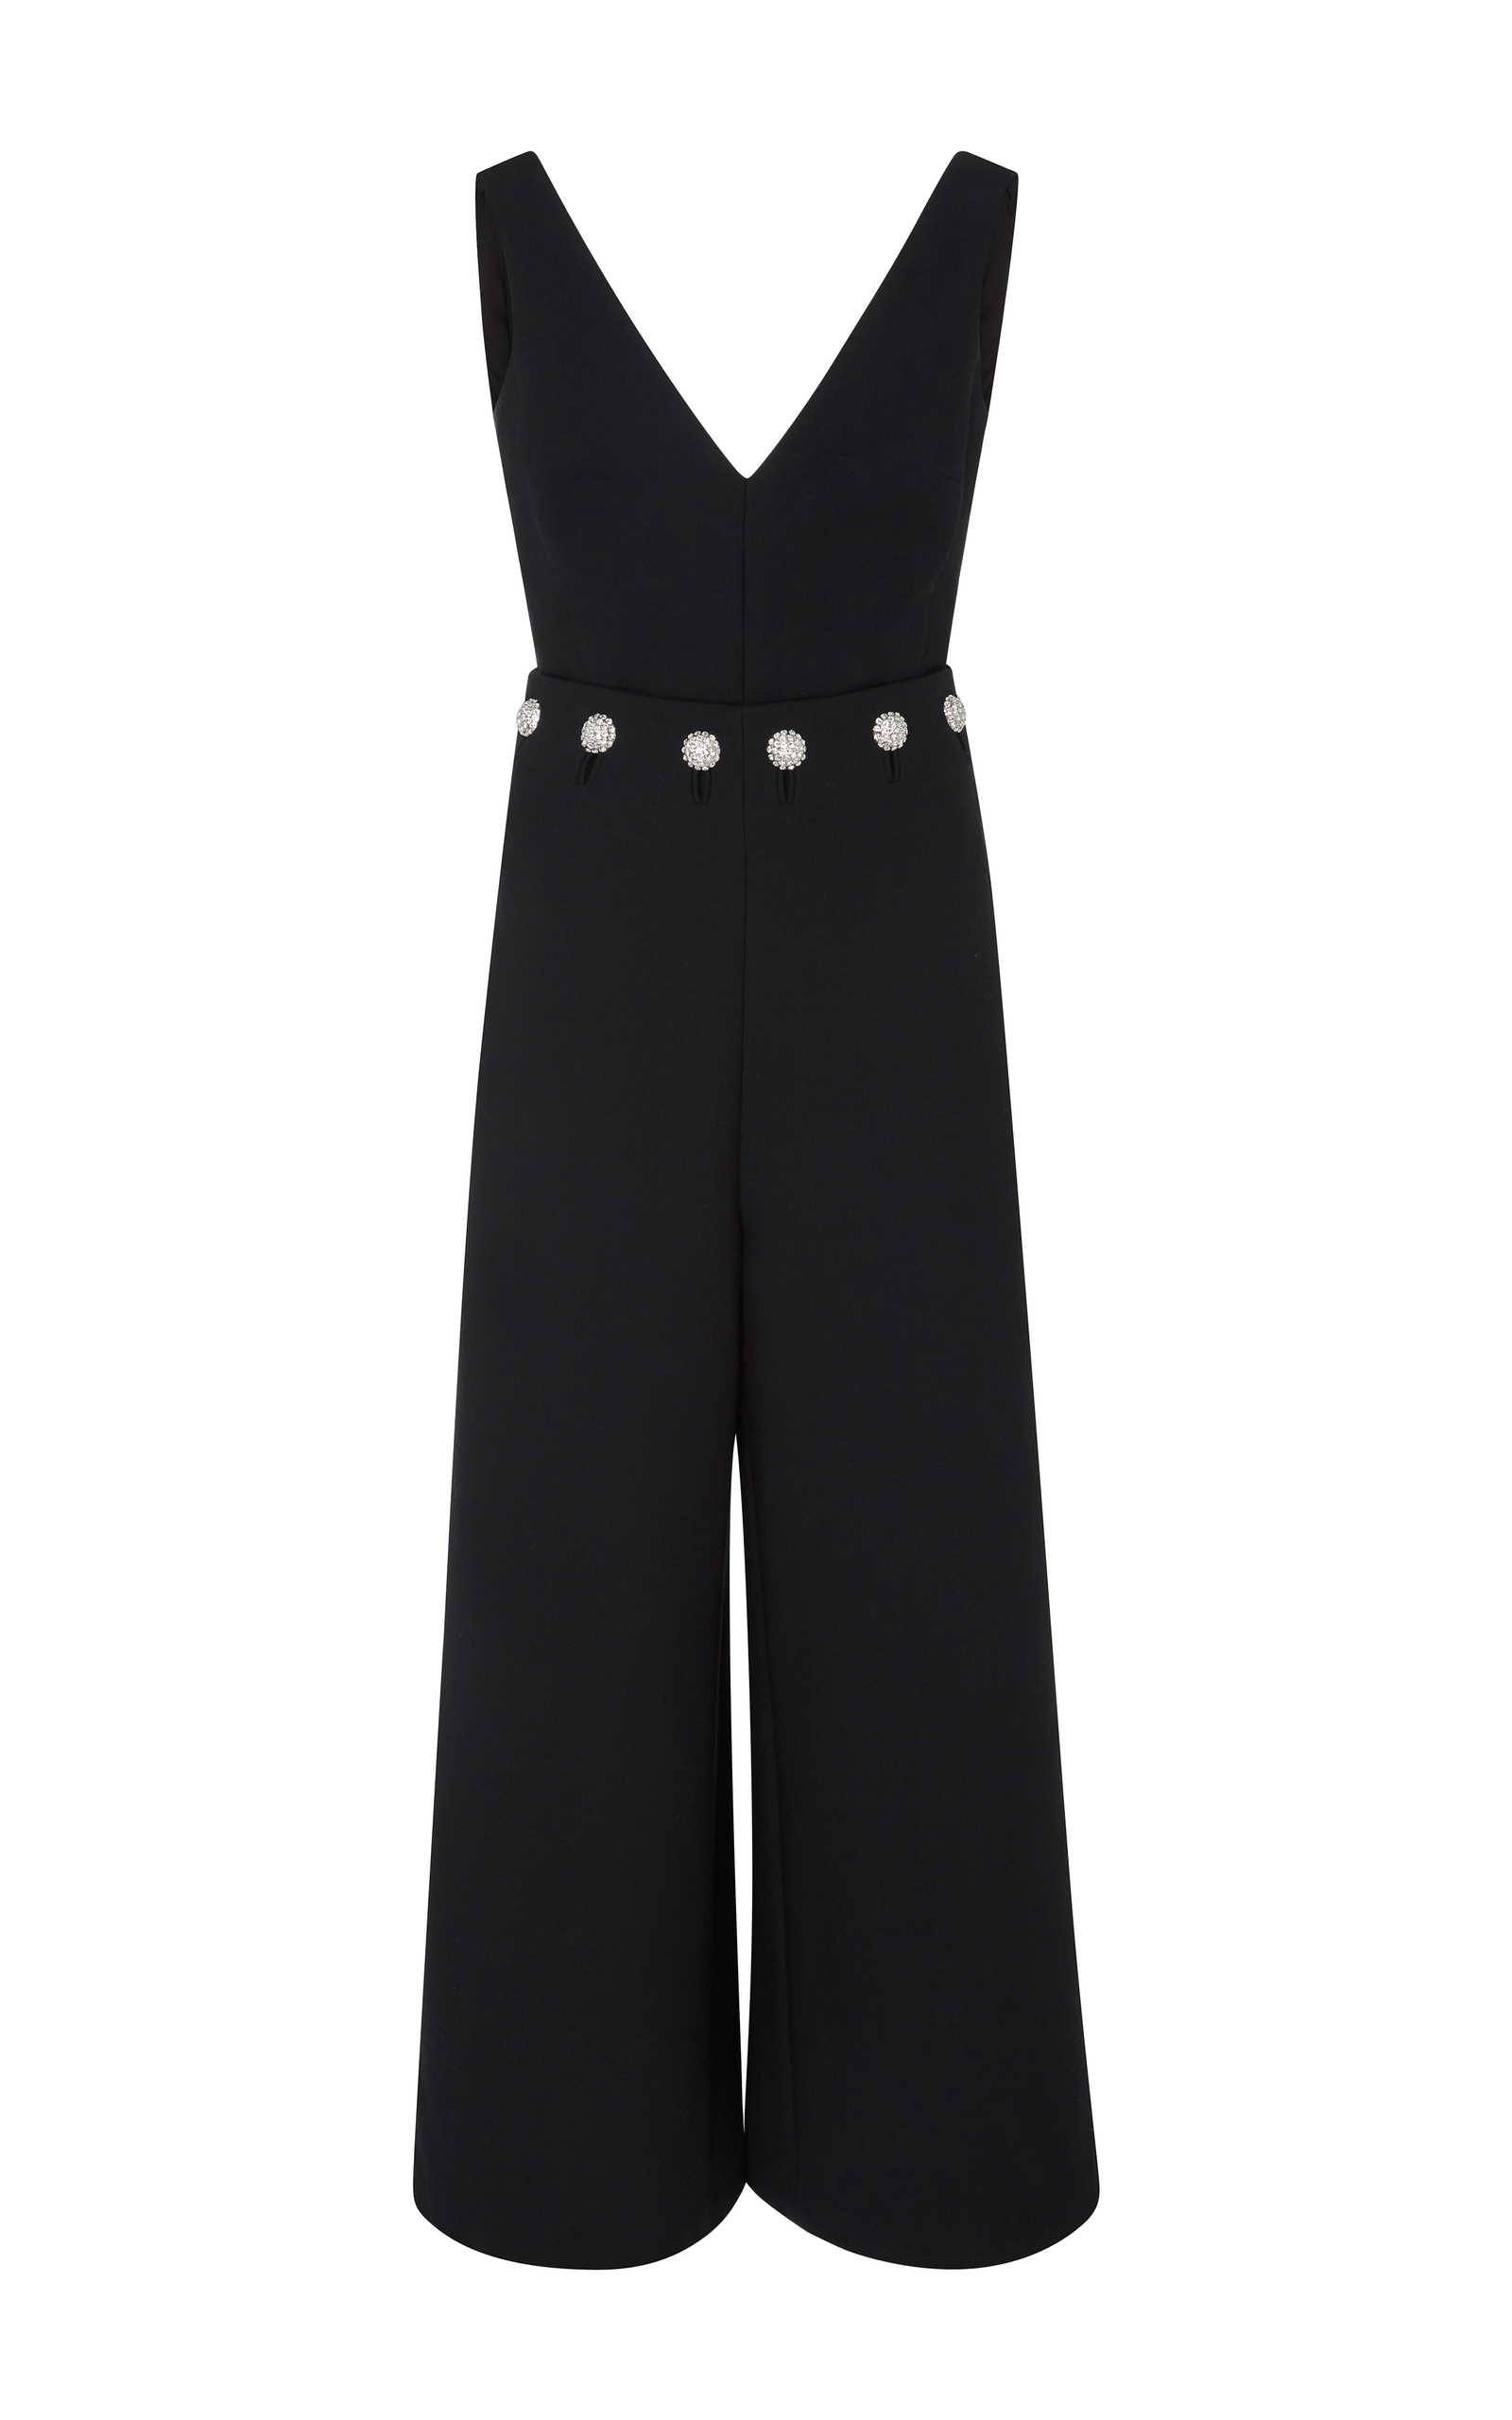 dc0323effc9 Tory BurchFremont Stretch Double Weave Jumpsuit. CLOSE. Loading